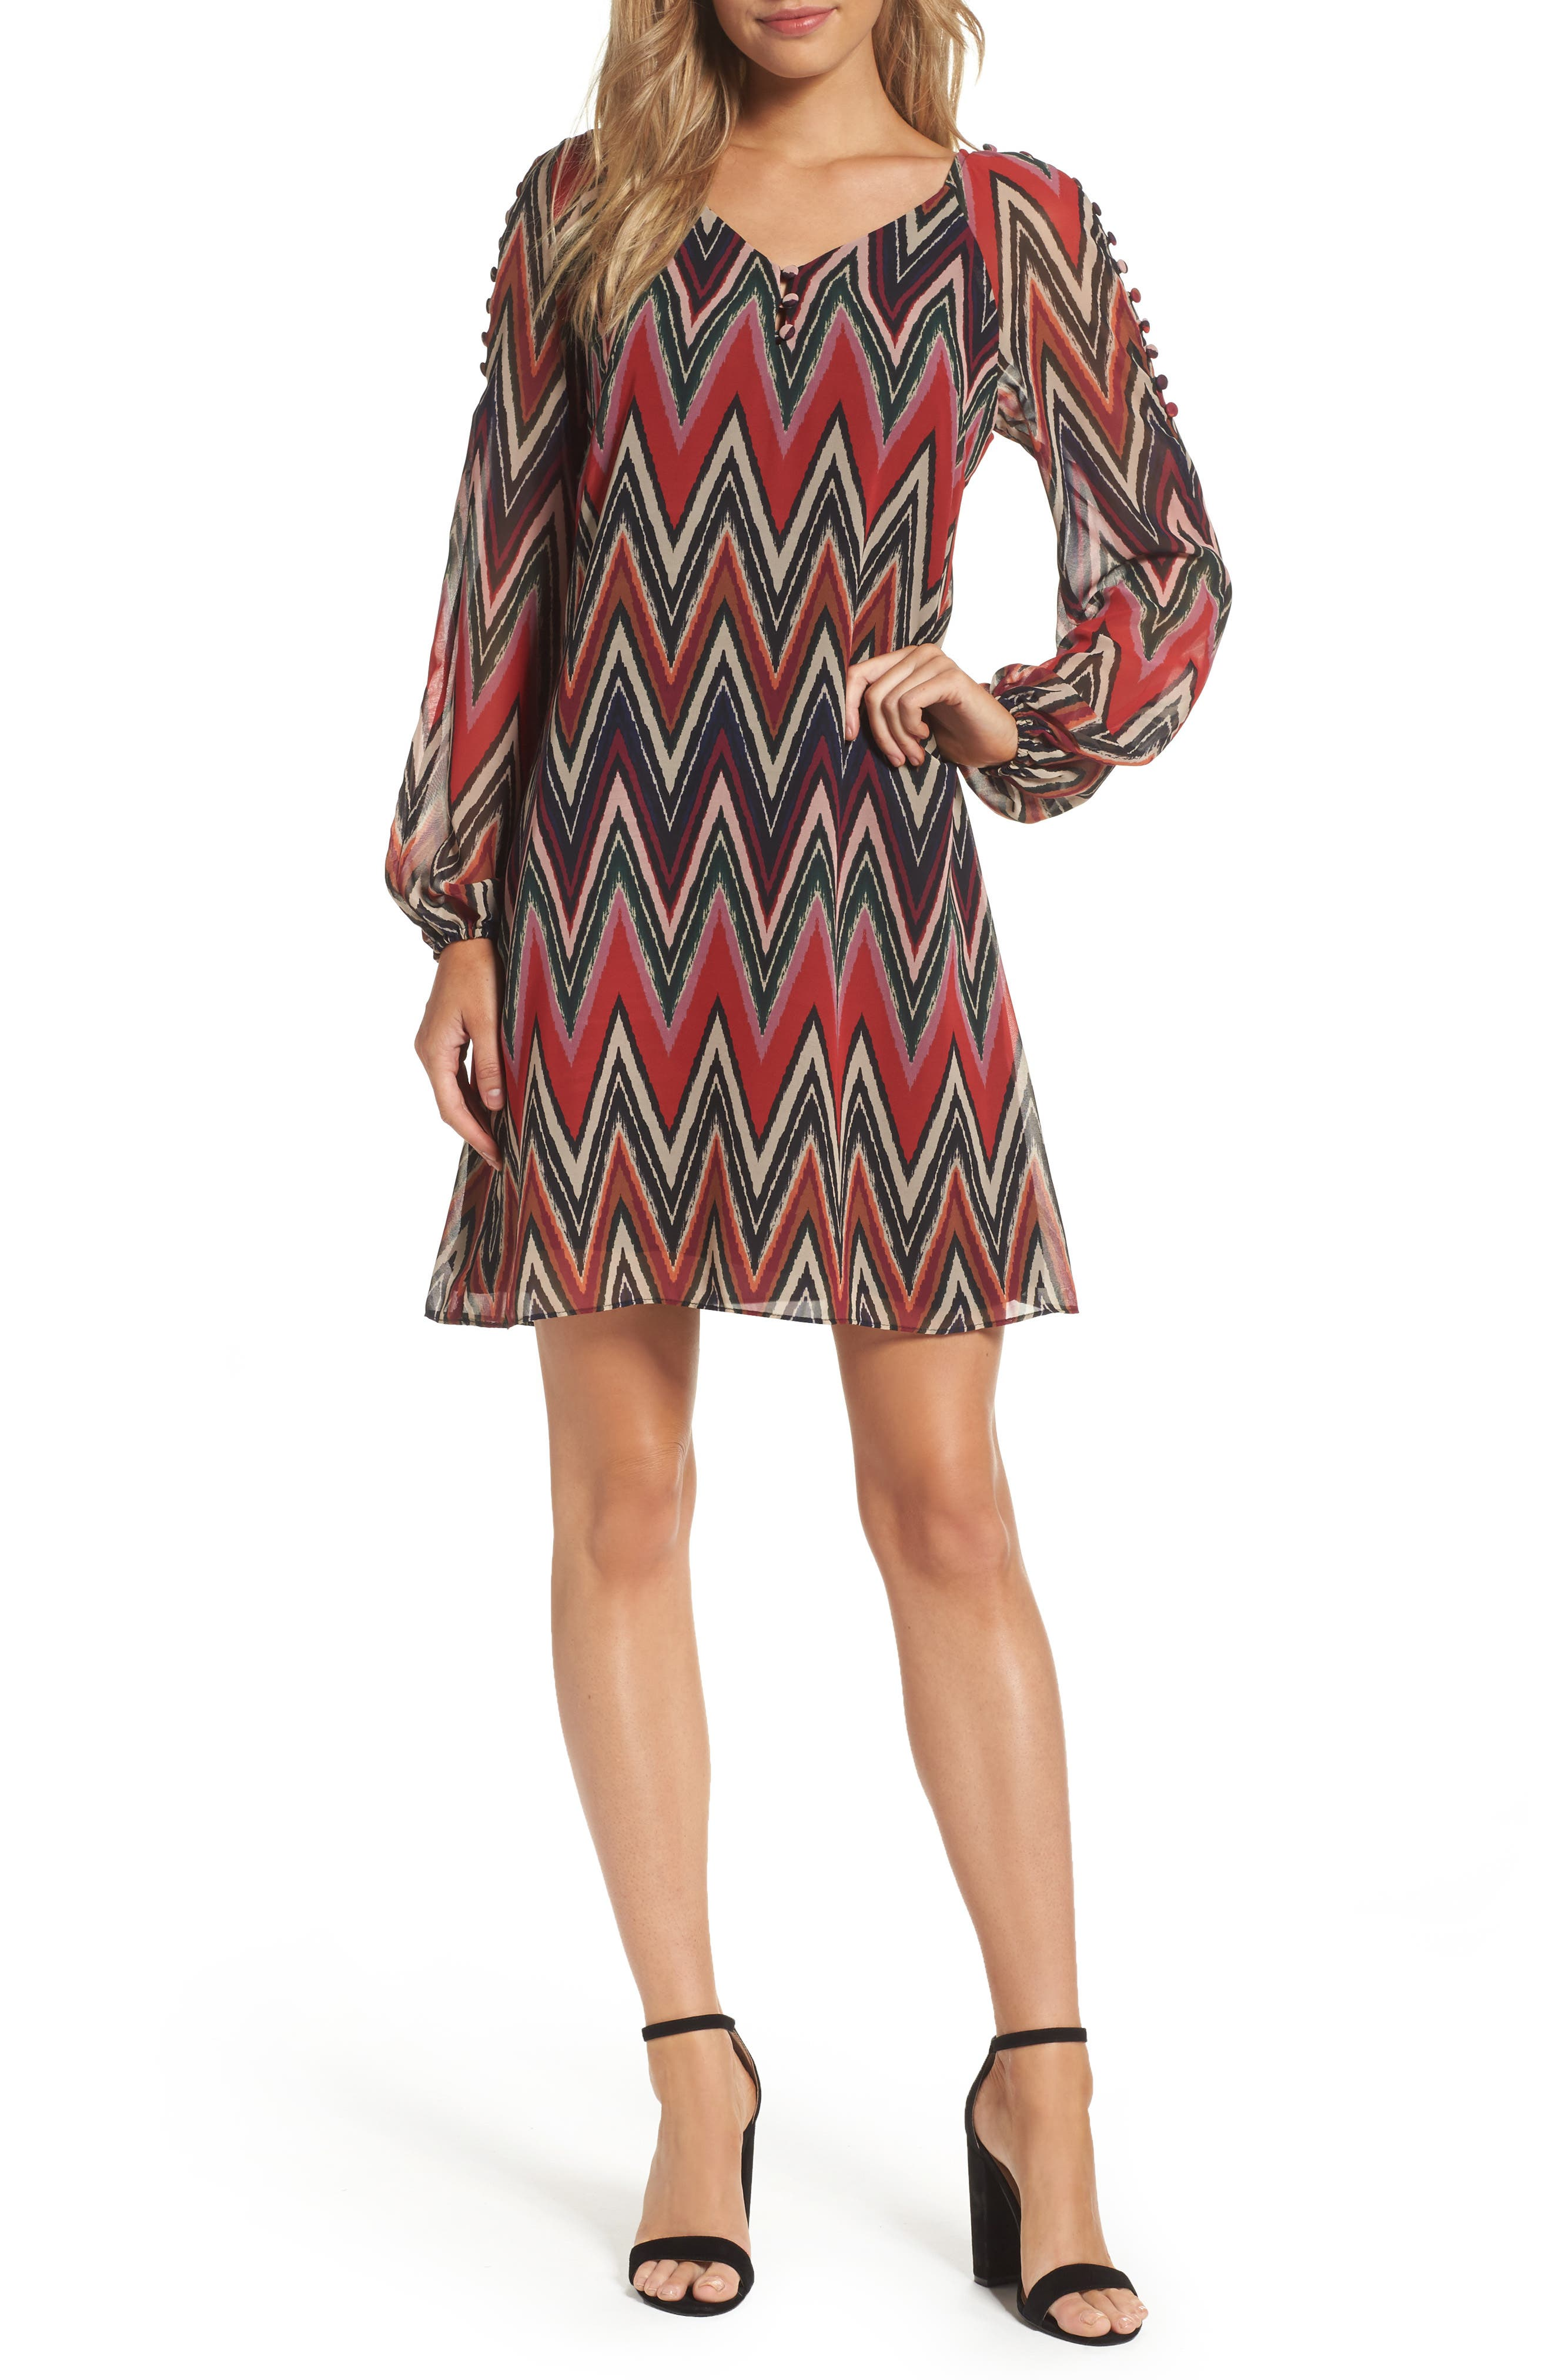 Chevron Swing Dress,                             Main thumbnail 1, color,                             Red/ Black